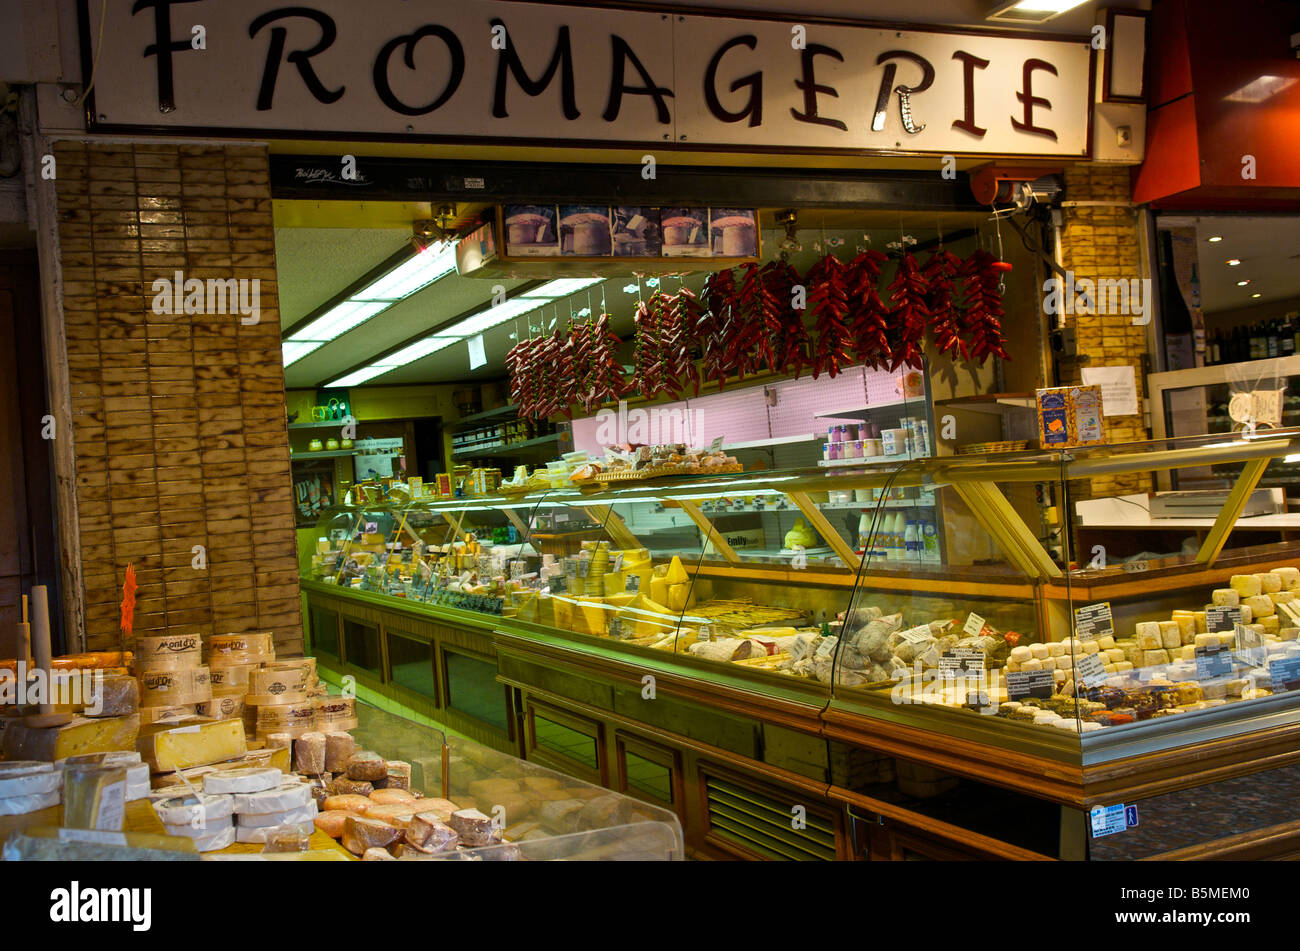 Fromagerie or cheese shop in Rue Mouffetard market in Paris France - Stock Image